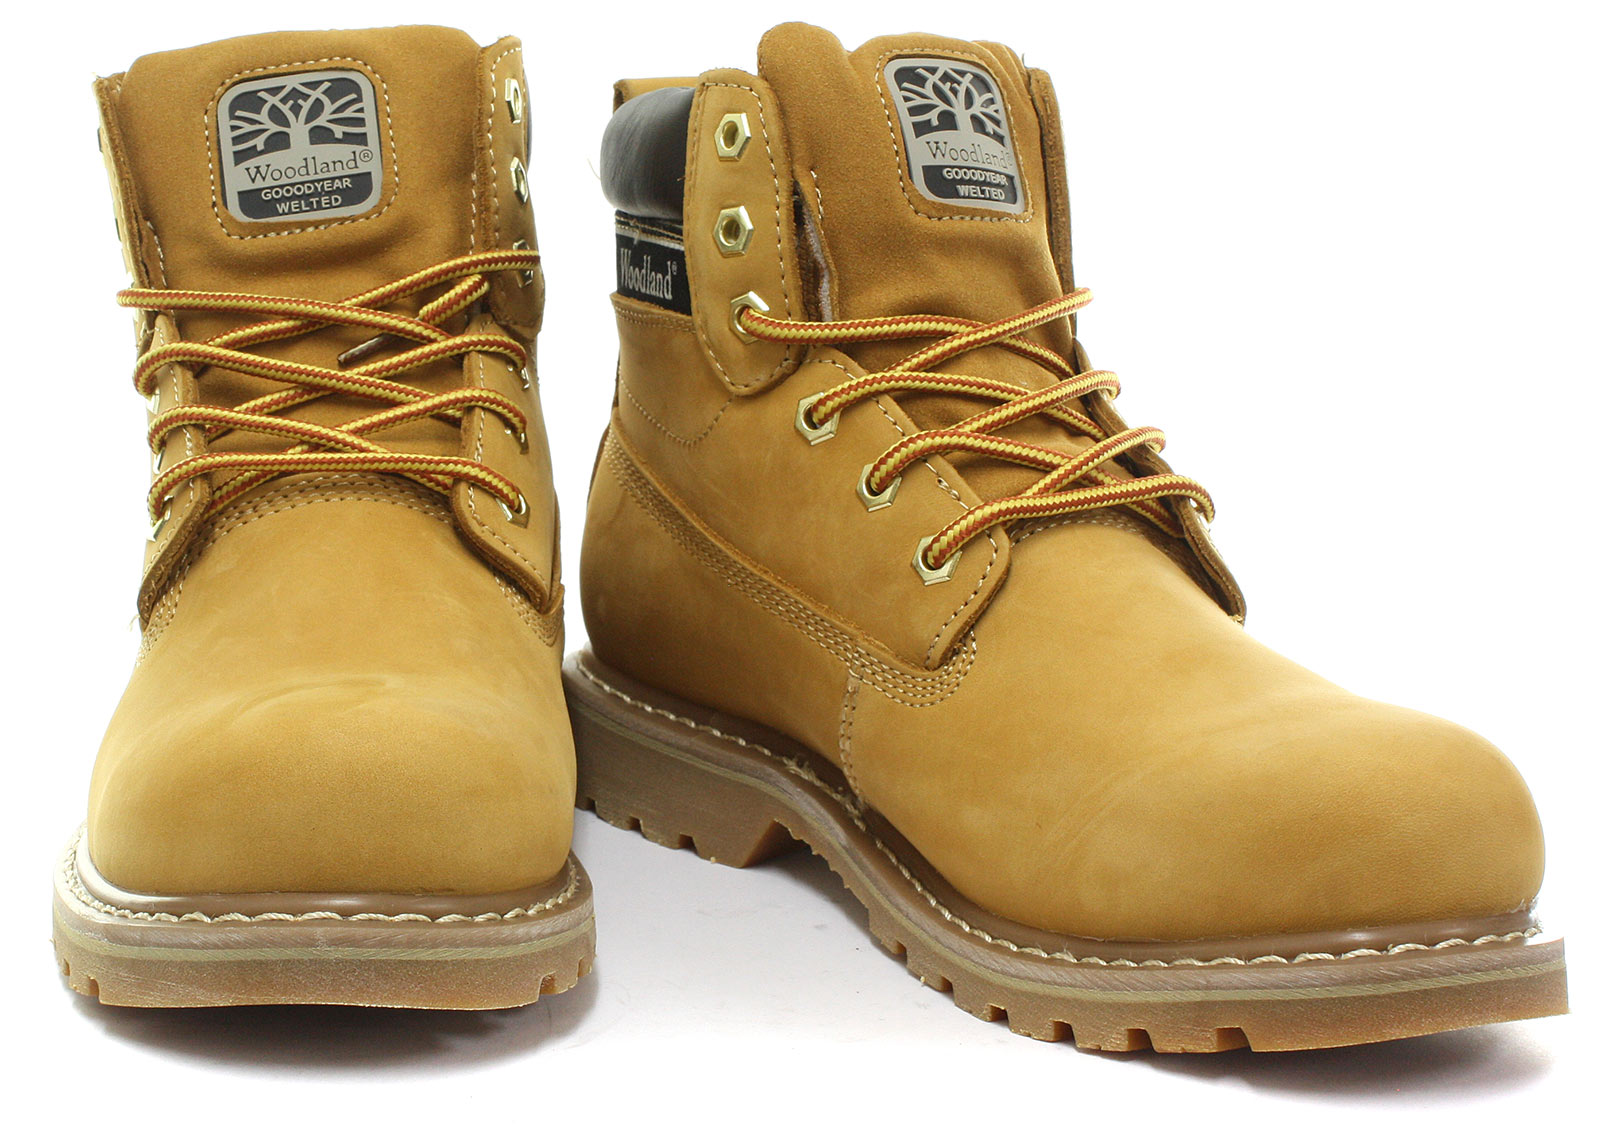 New-Woodland-M905-Mens-6-Eye-Utility-Boots-ALL-SIZES-AND-COLOURS miniature 18